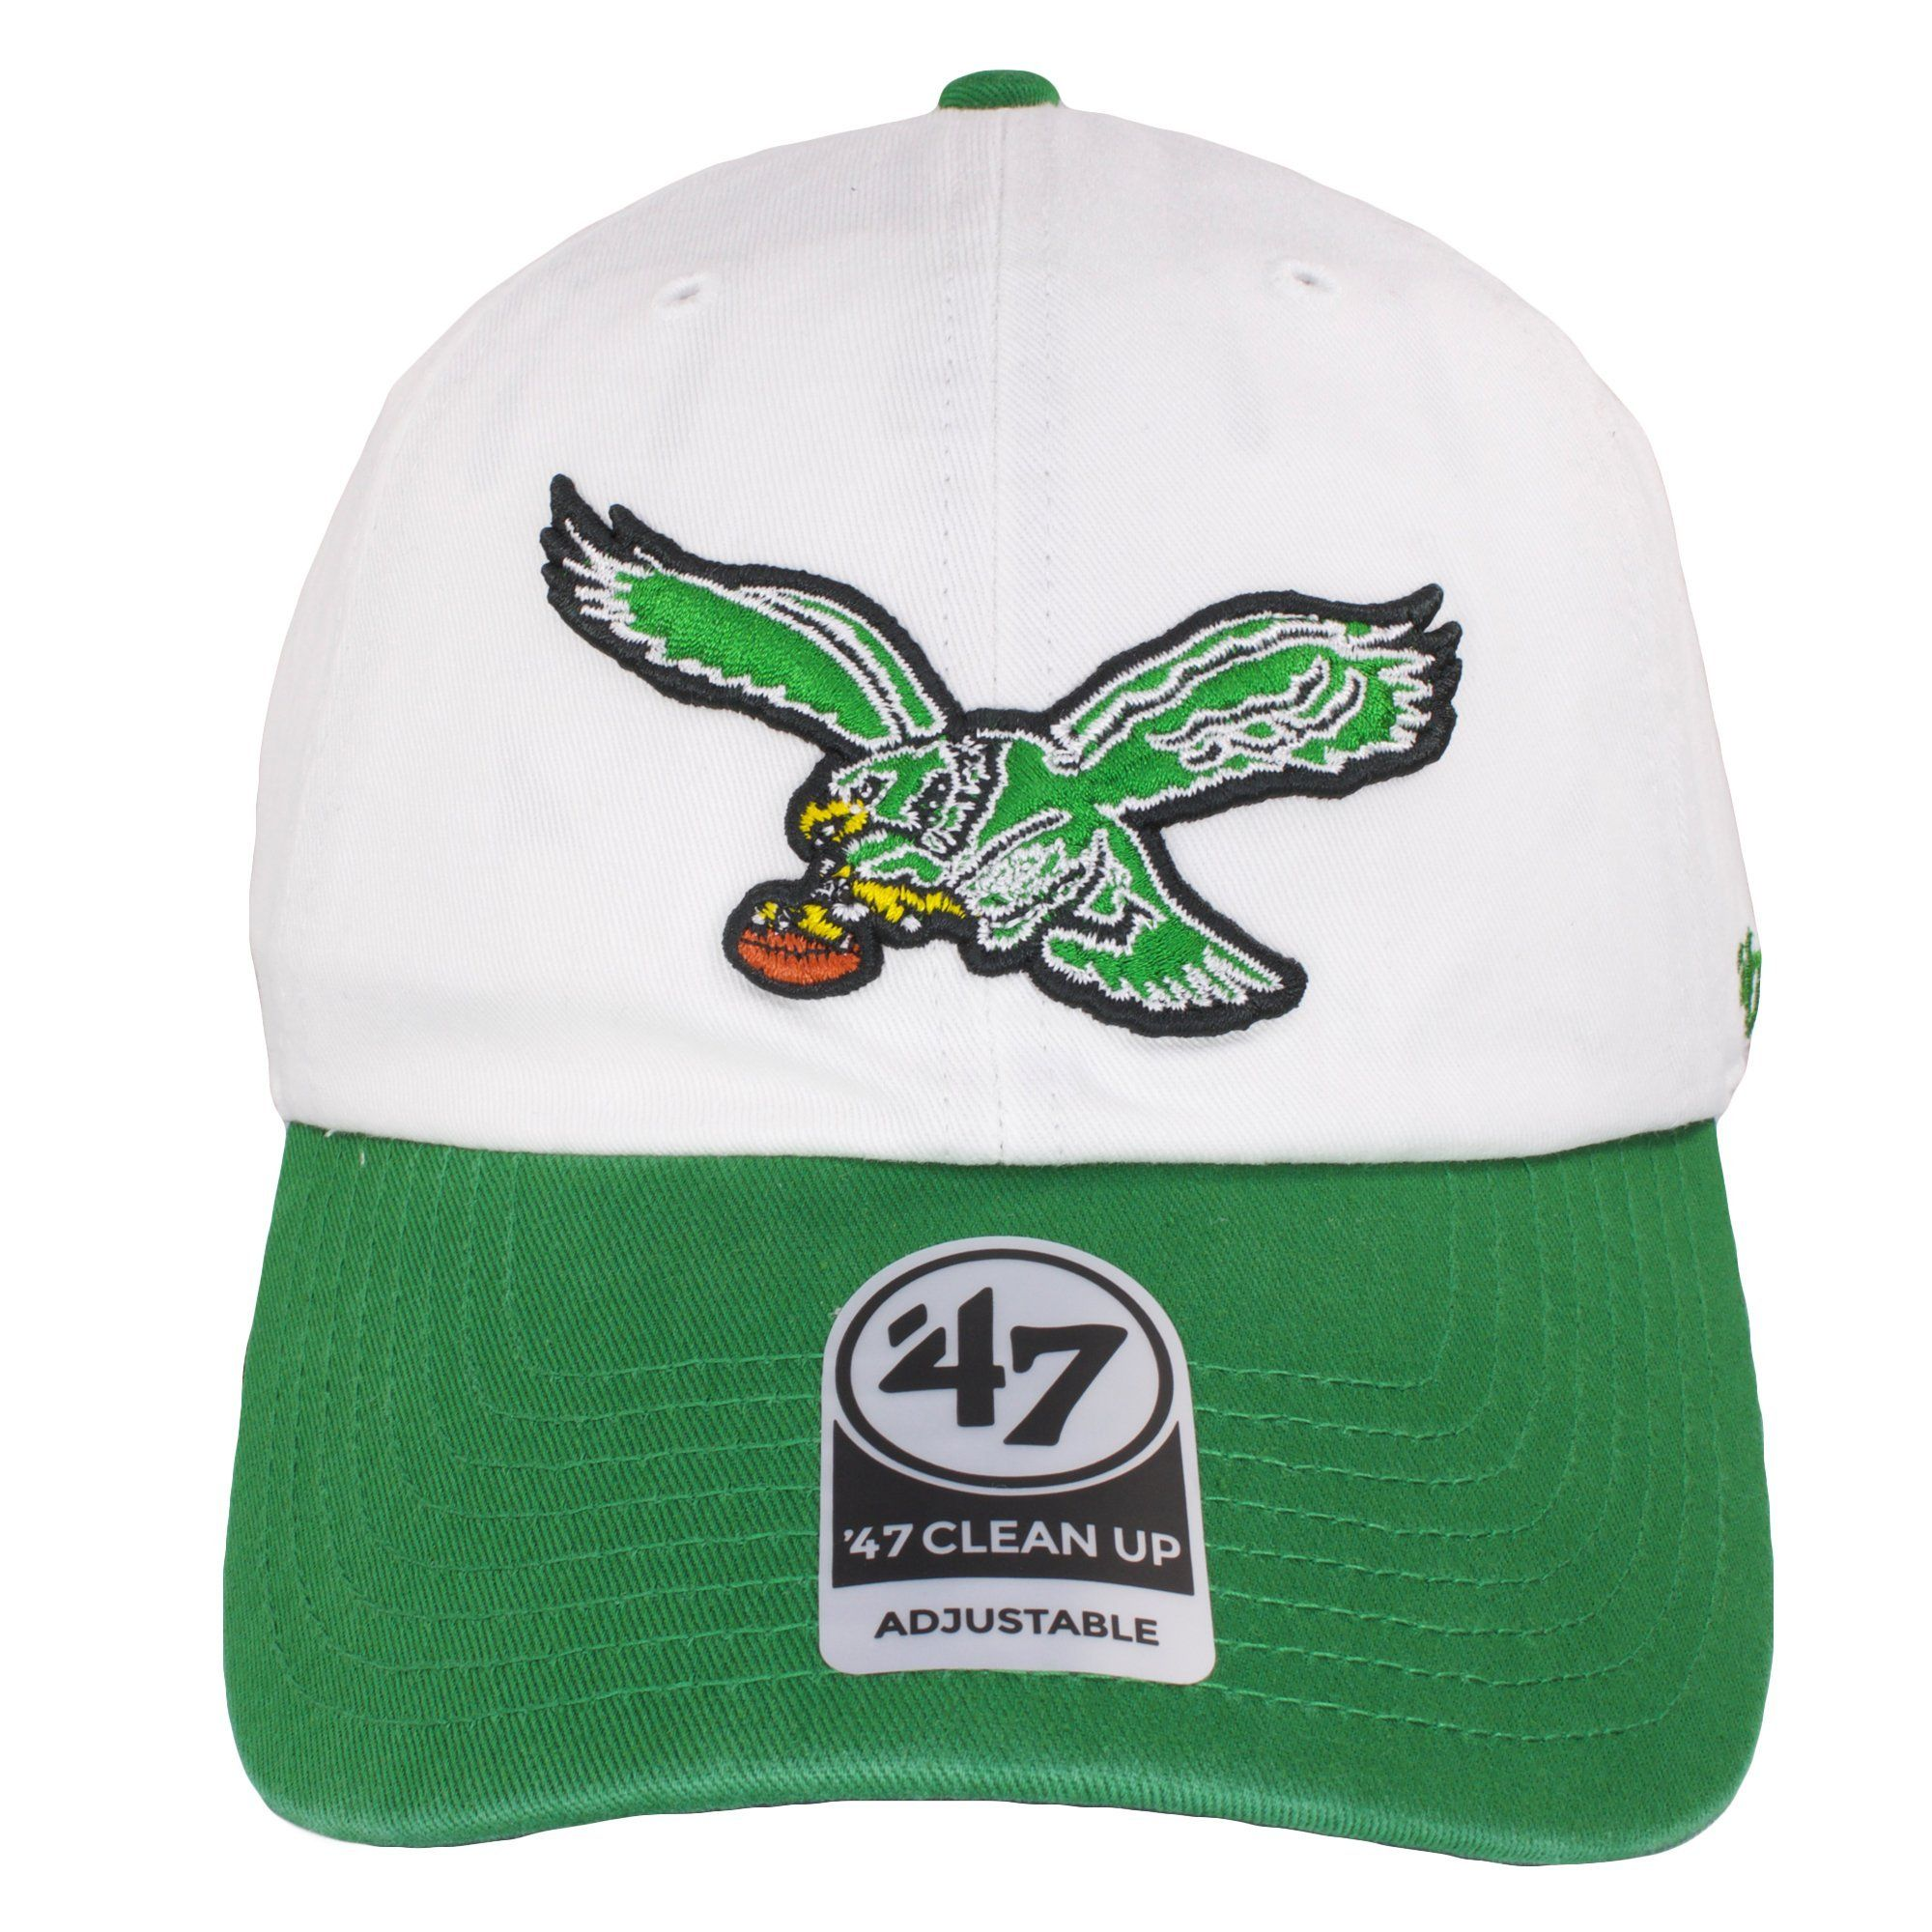 227f75c7ee47a Philadelphia Eagles Throwback Logo White on Kelly Green Dad Hat ...